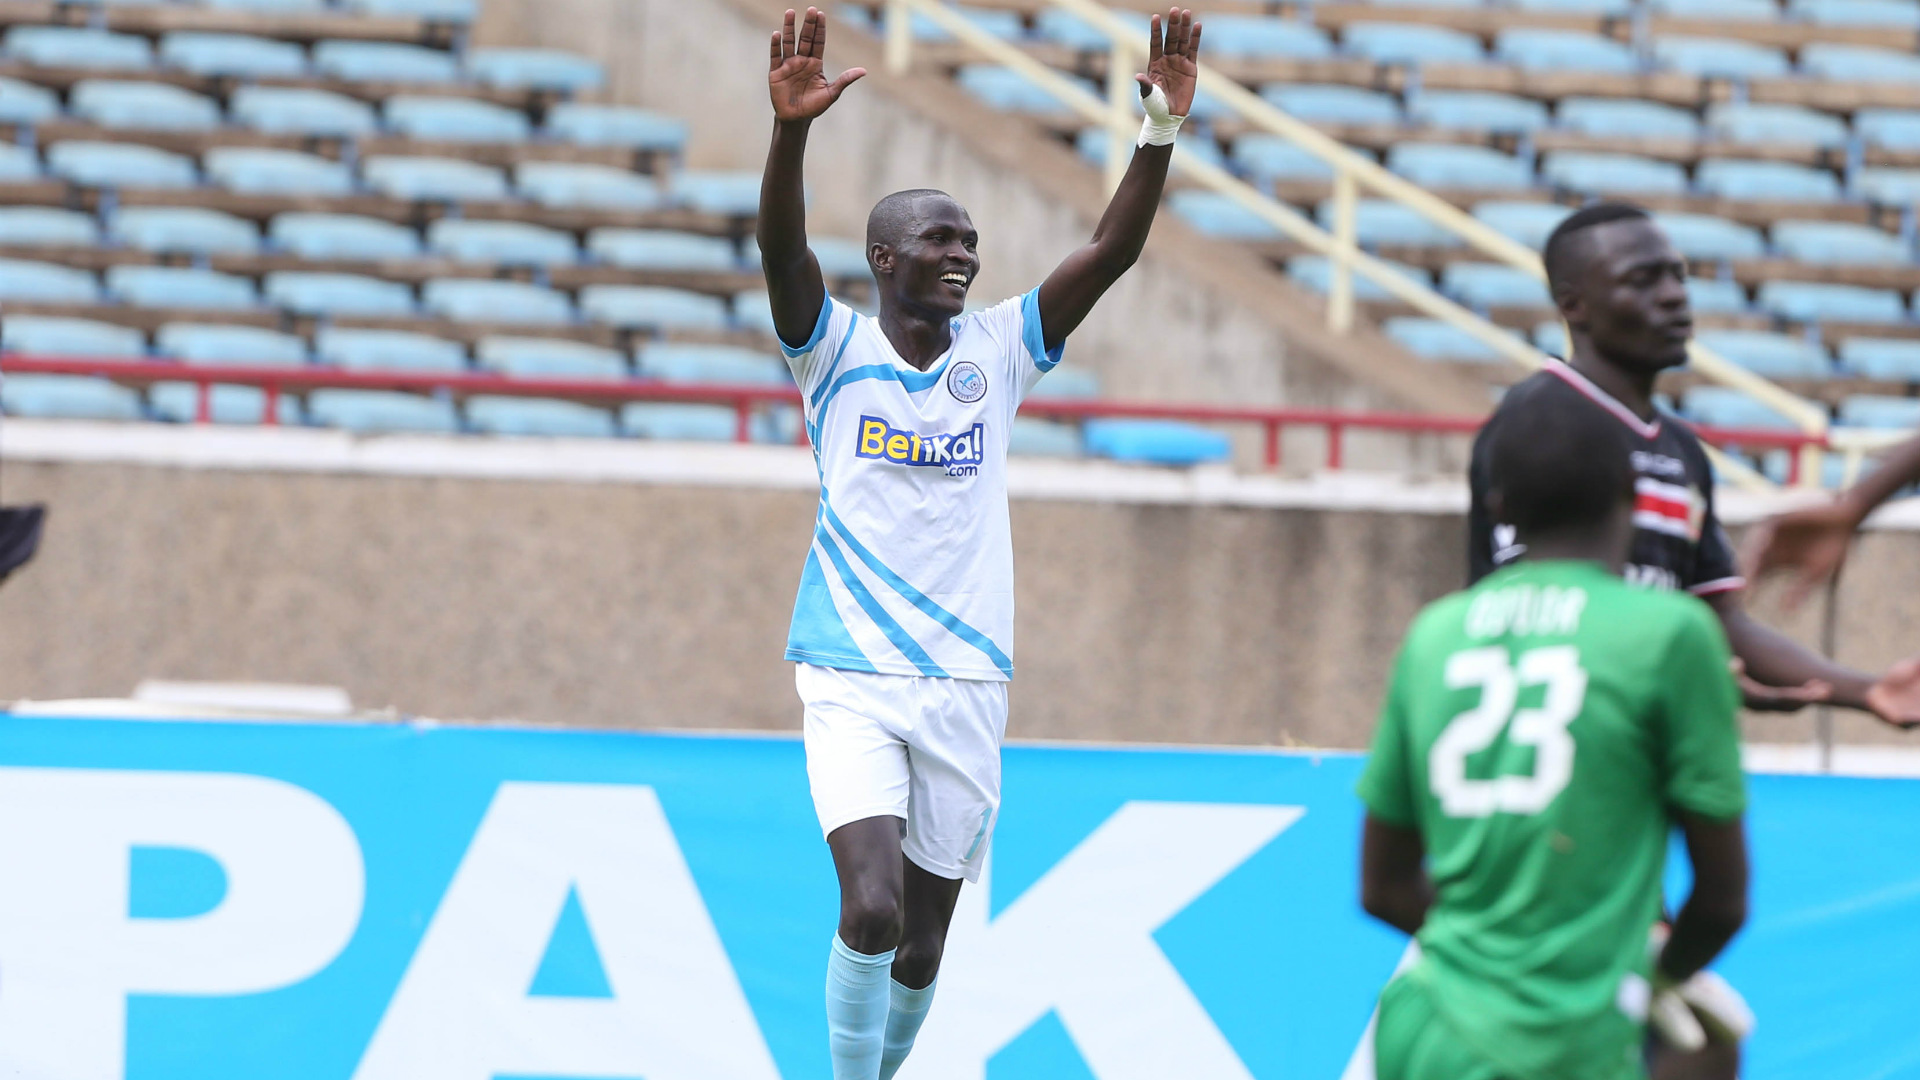 Umar Lasumba of Sofapaka celebrates.j